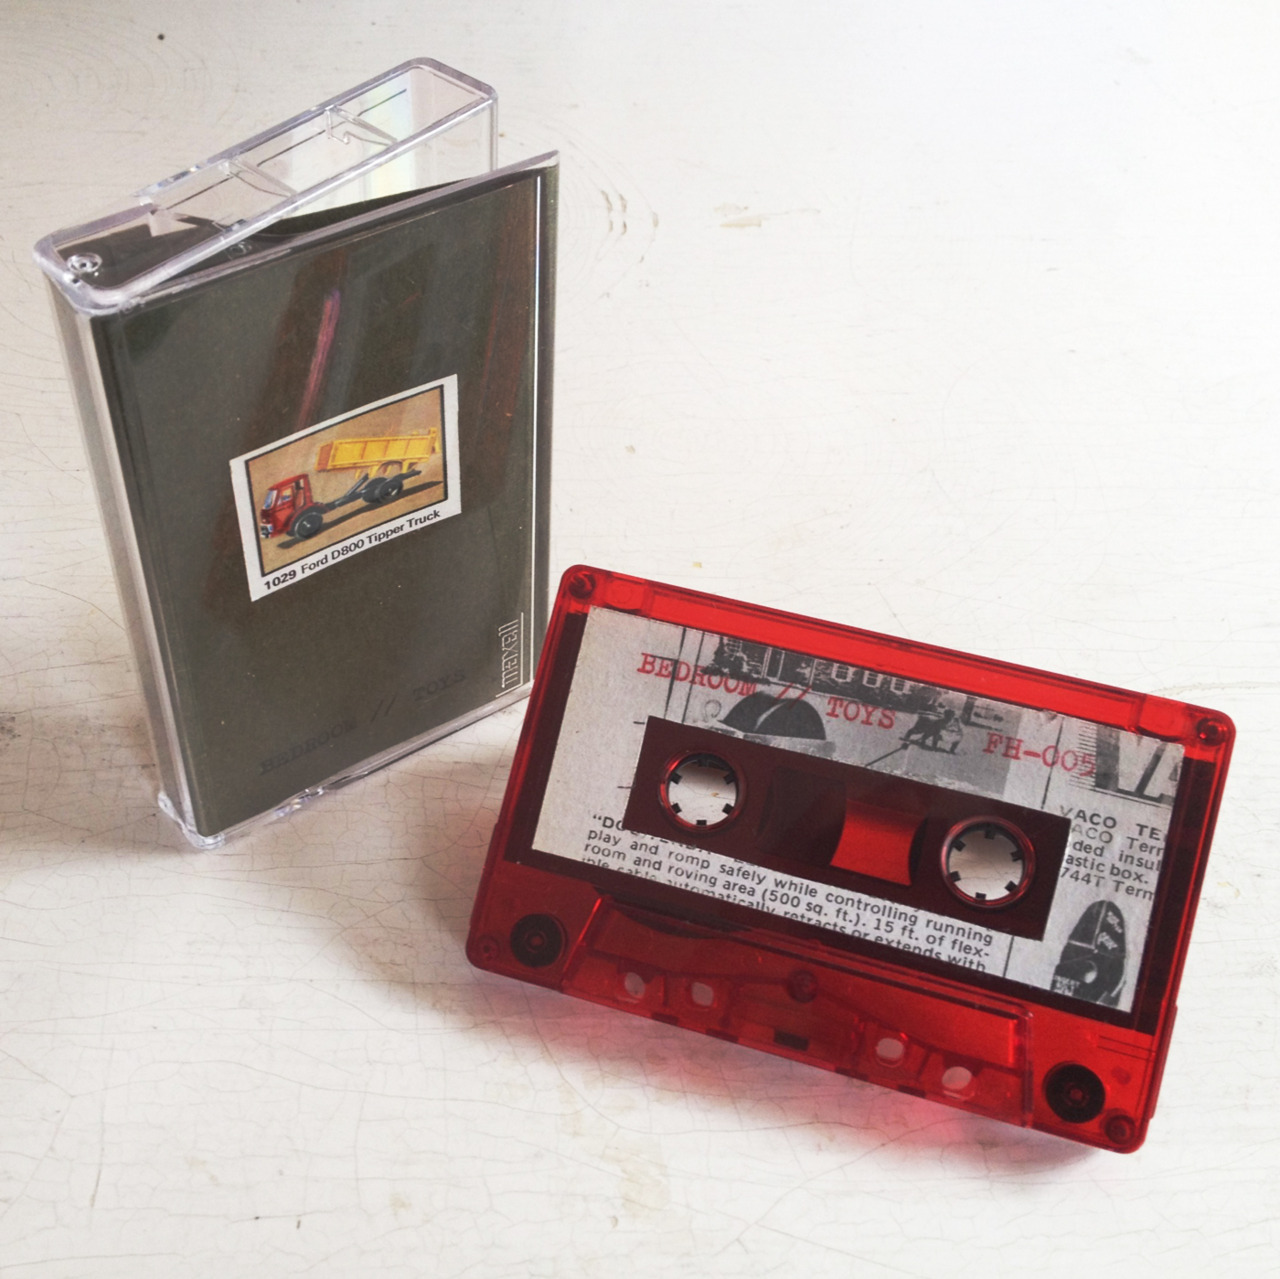 ONE WEEK FROM TODAY / 15 MAY 2012  Furious Hooves  will officially release the extremely limited  Bedroom  EP, Toys, on 24 sexy red cassette tapes, each unique and individually numbered.   As always this release was handmade by the loving hands at furhoof and will include a special surprise with each purchase. And there you have it!